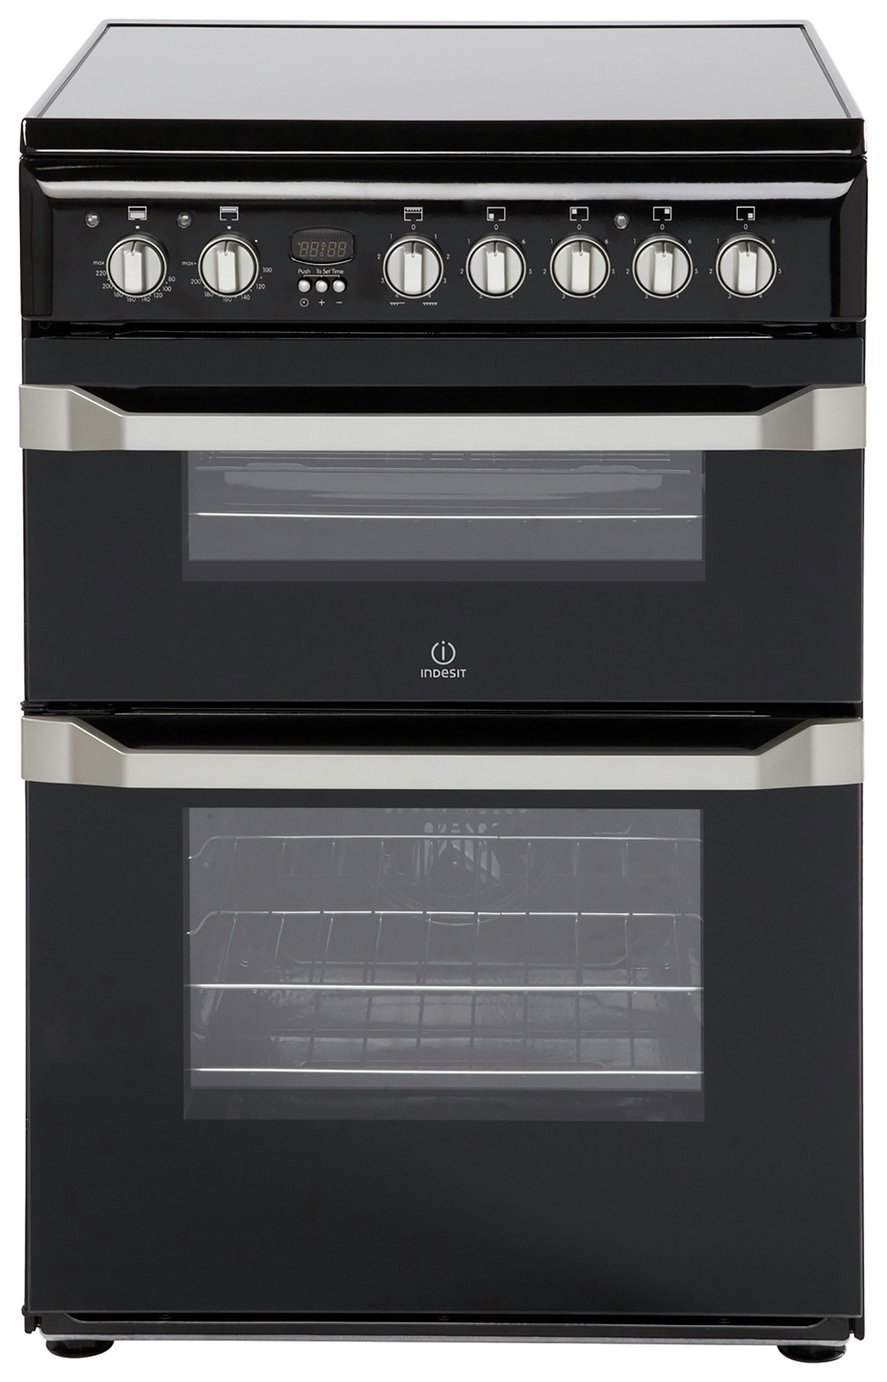 Indesit ID60C2 60cm Twin Cavity Electric Cooker - Black from Indesit